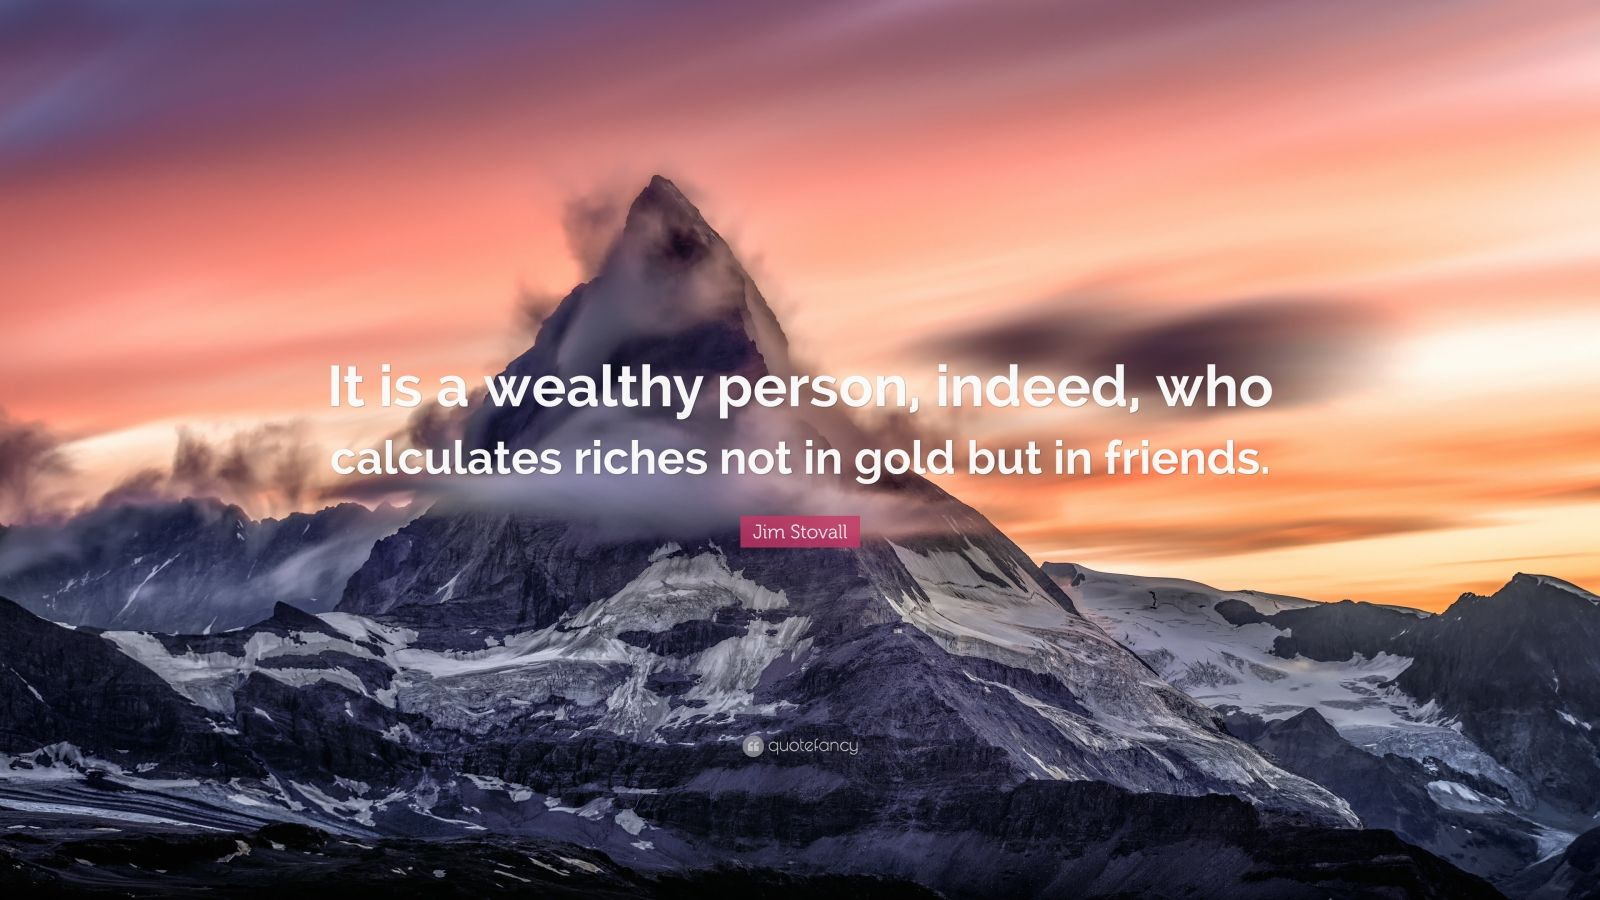 """Jim Stovall Quote: """"It is a wealthy person, indeed, who calculates riches not in gold but in friends."""""""